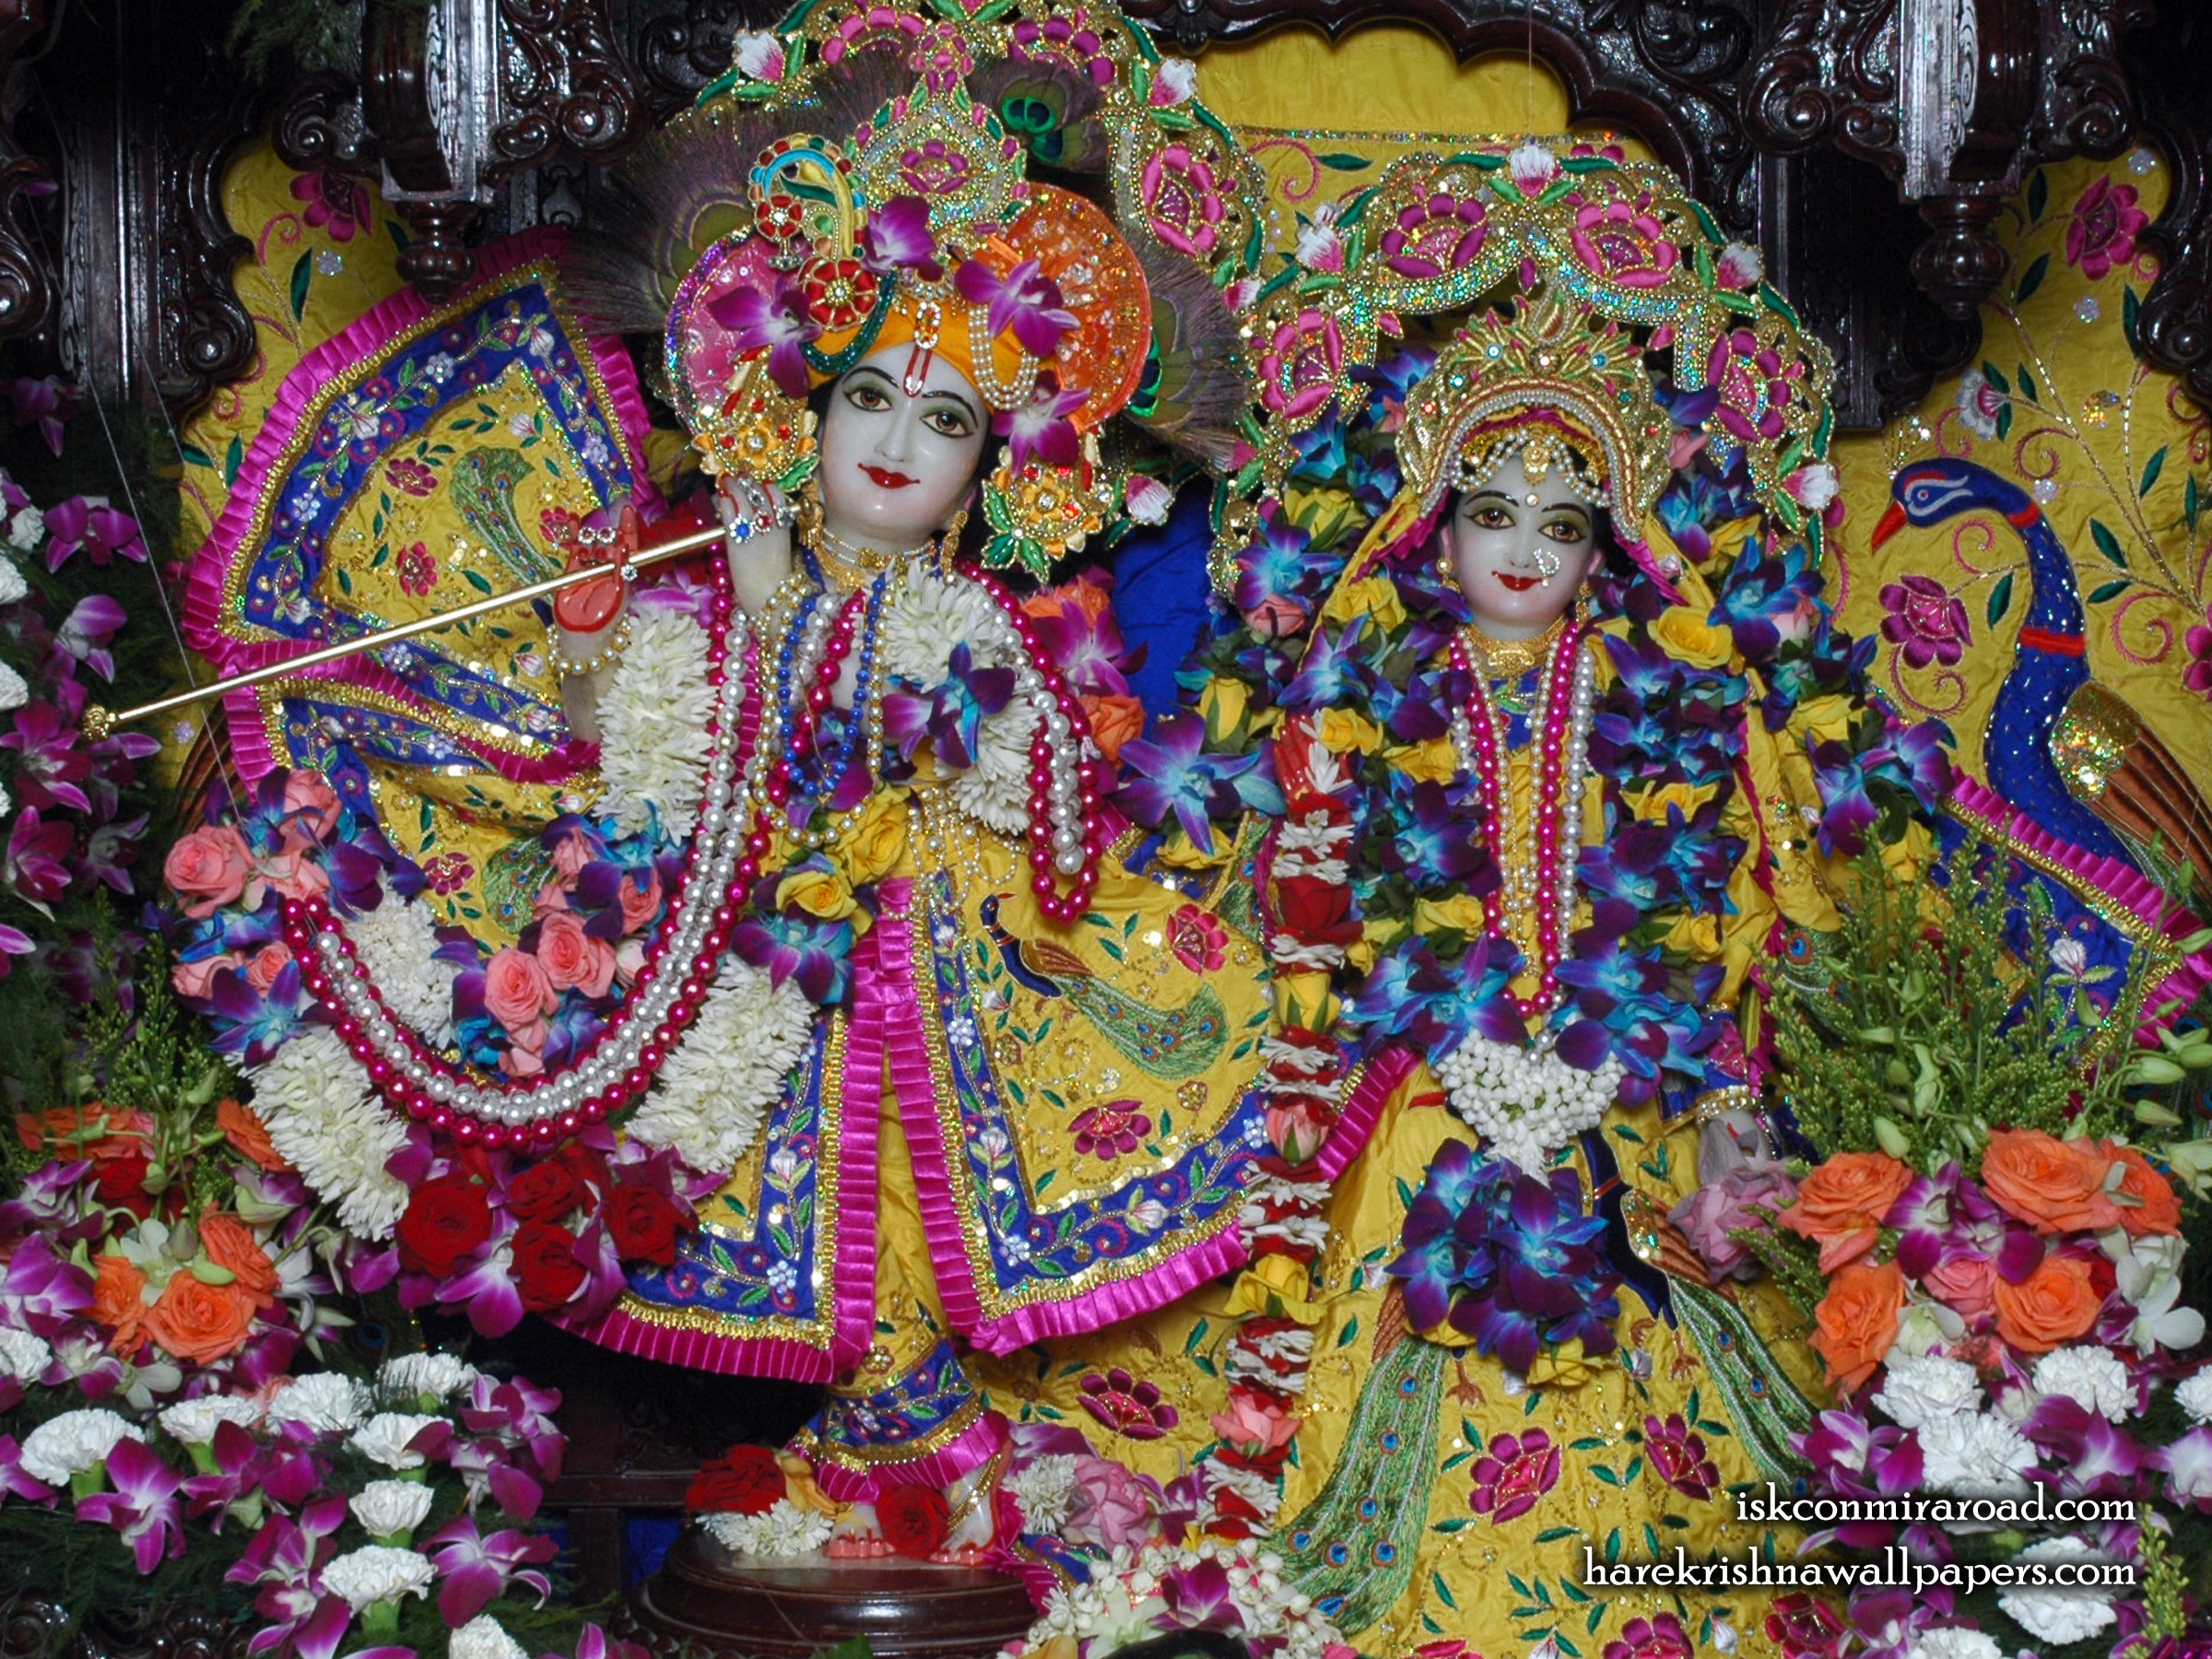 Sri Sri Radha Giridhari Wallpaper (017) Size 2400x1800 Download